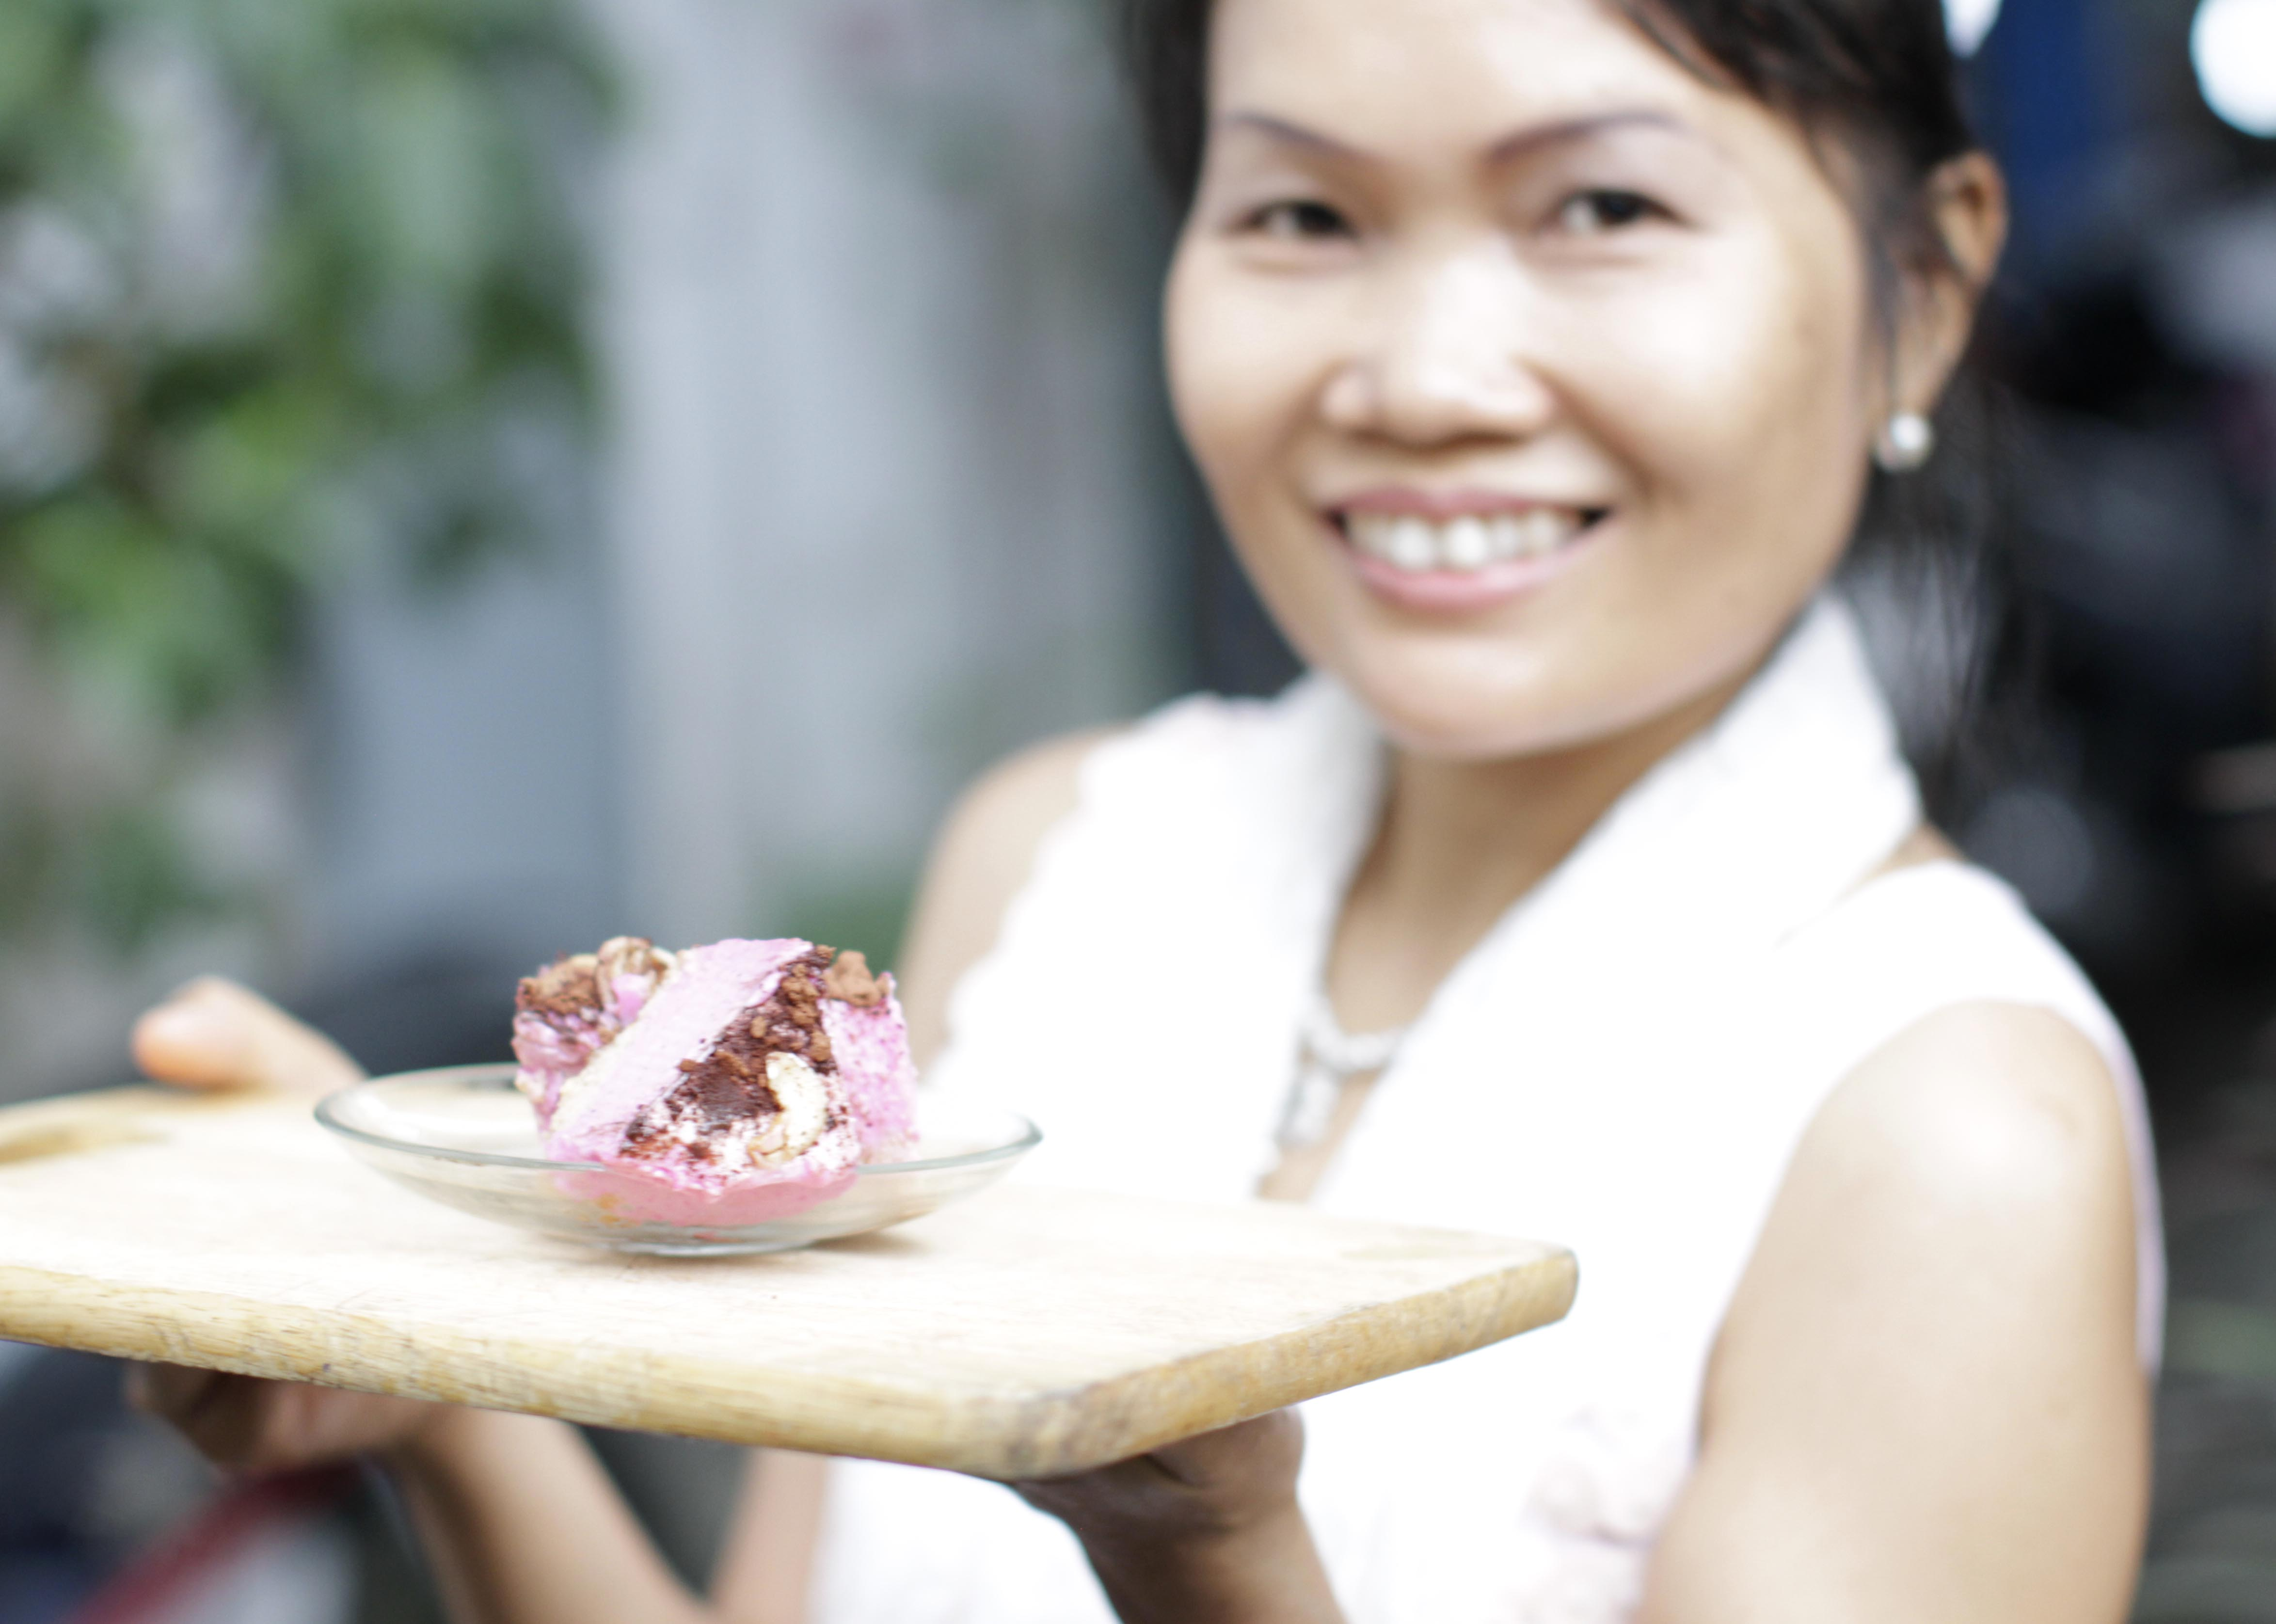 Our founder May holiding a plate of vegan magenta dragonfruit ice cream cake.